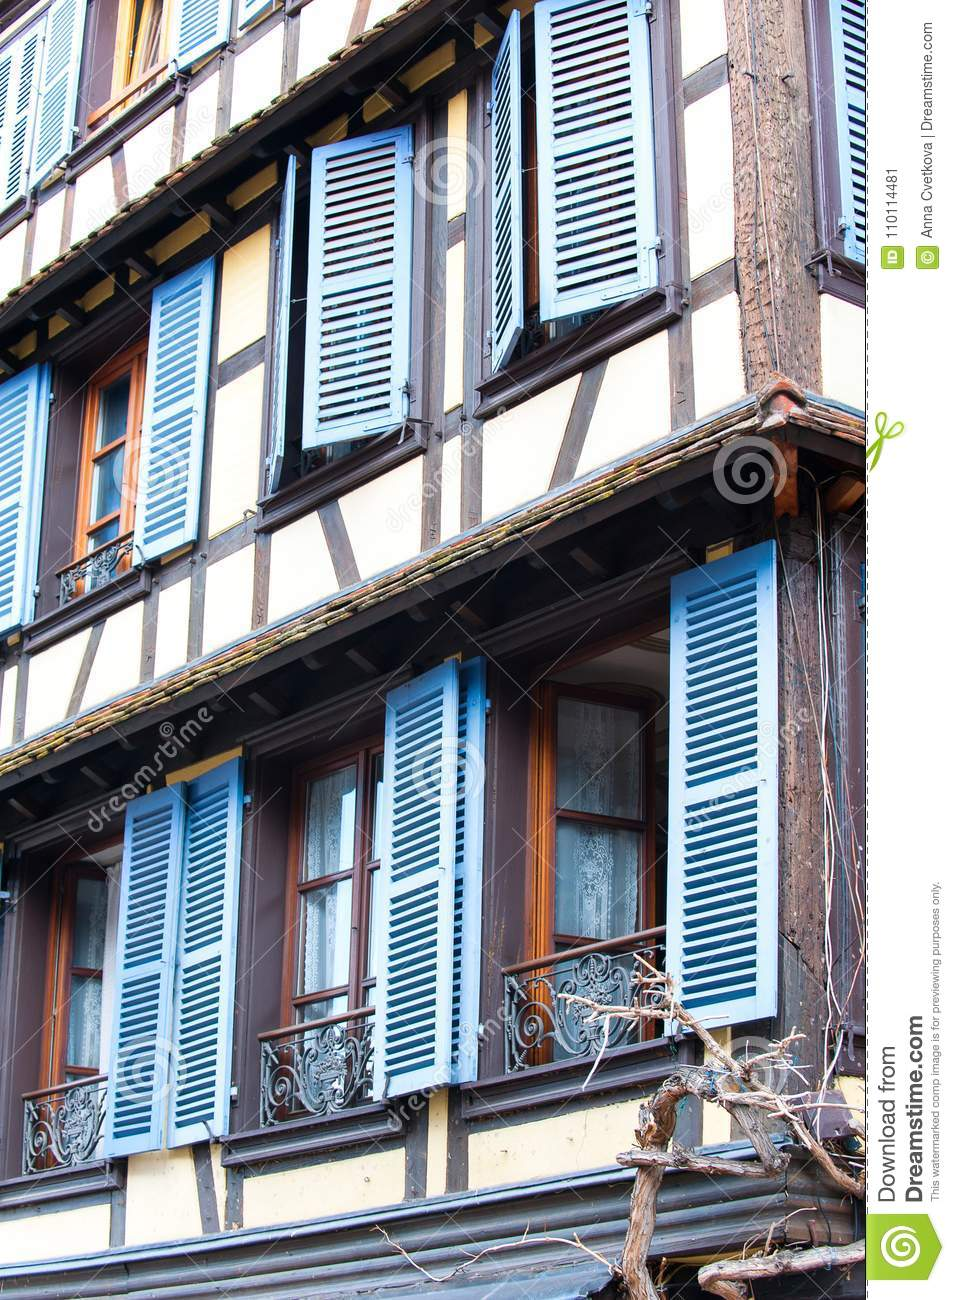 French provencal style windows with blue wooden shutters. Alsace